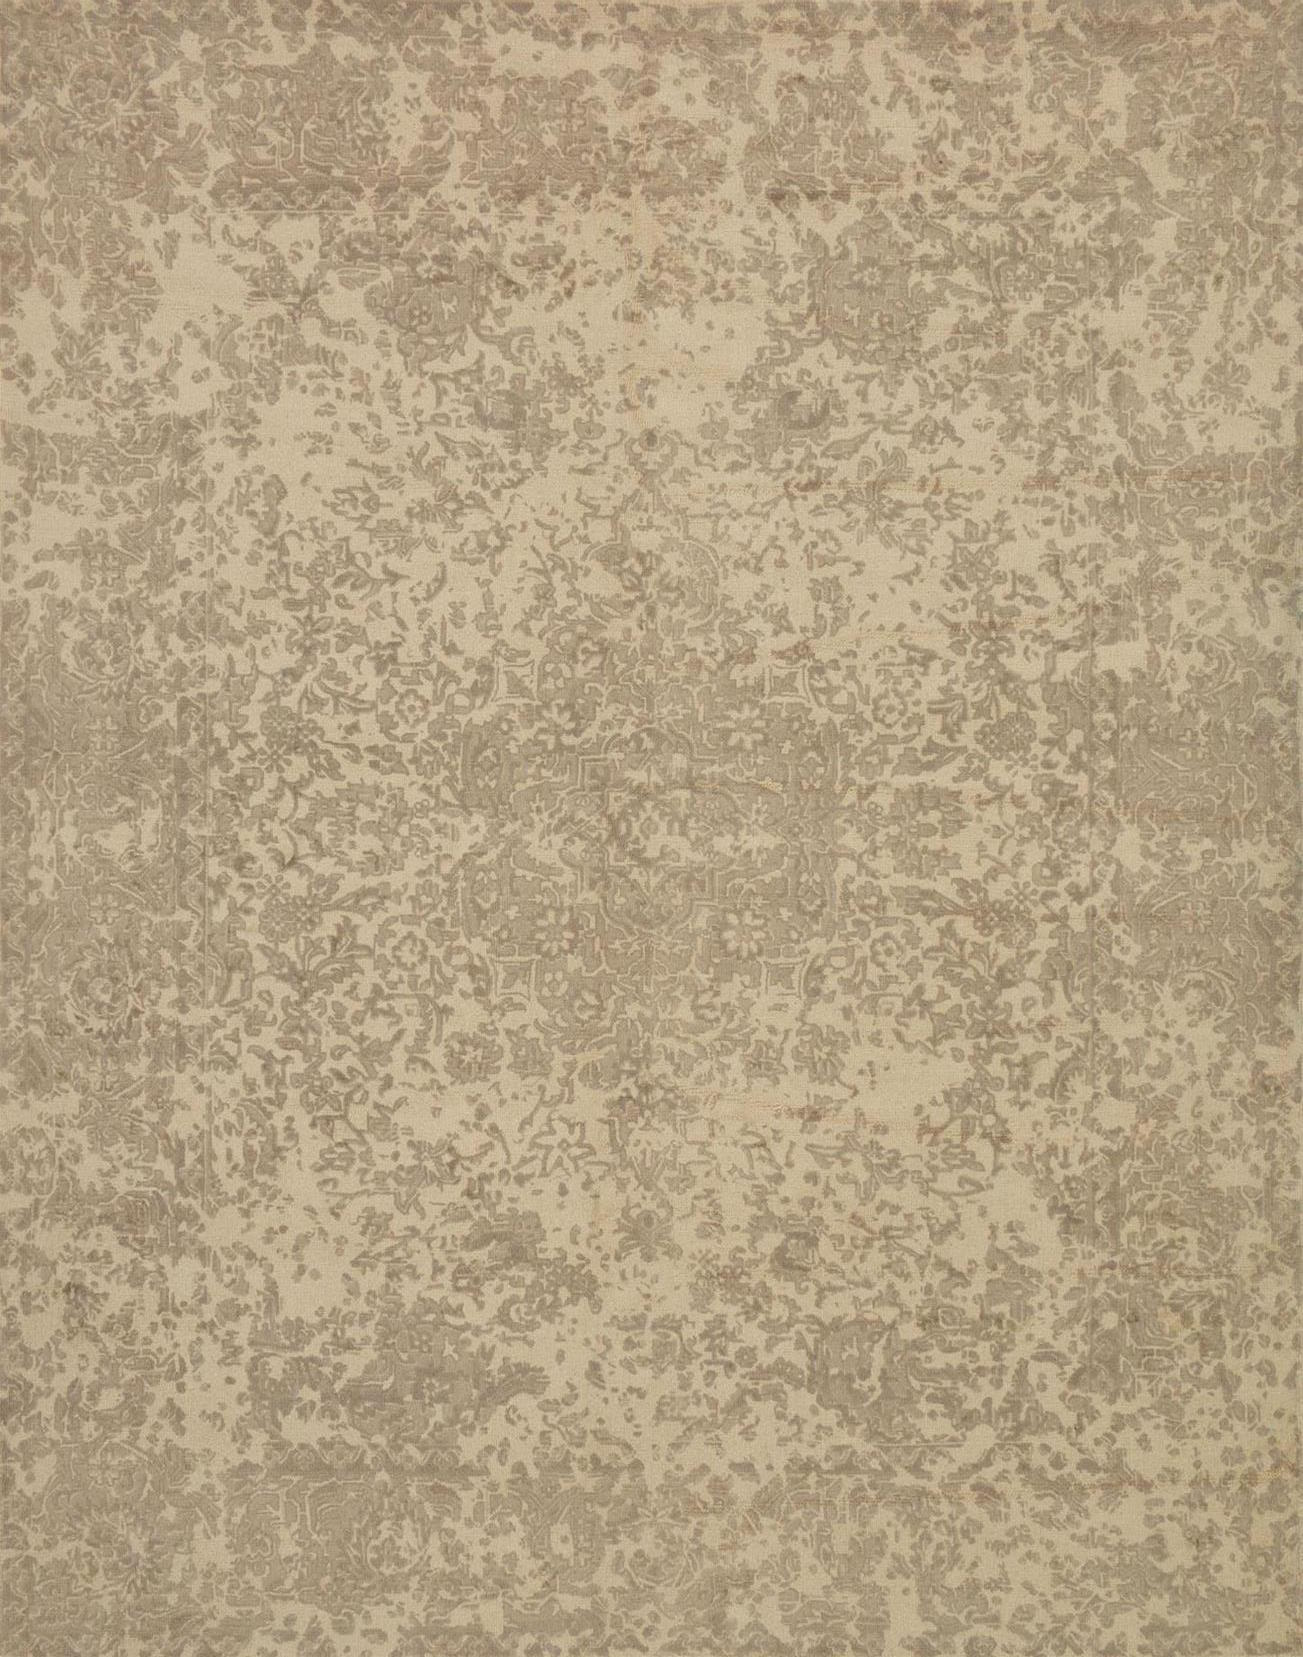 Lily Park Lp 01 Ivory Area Rug Magnolia Home By Joanna